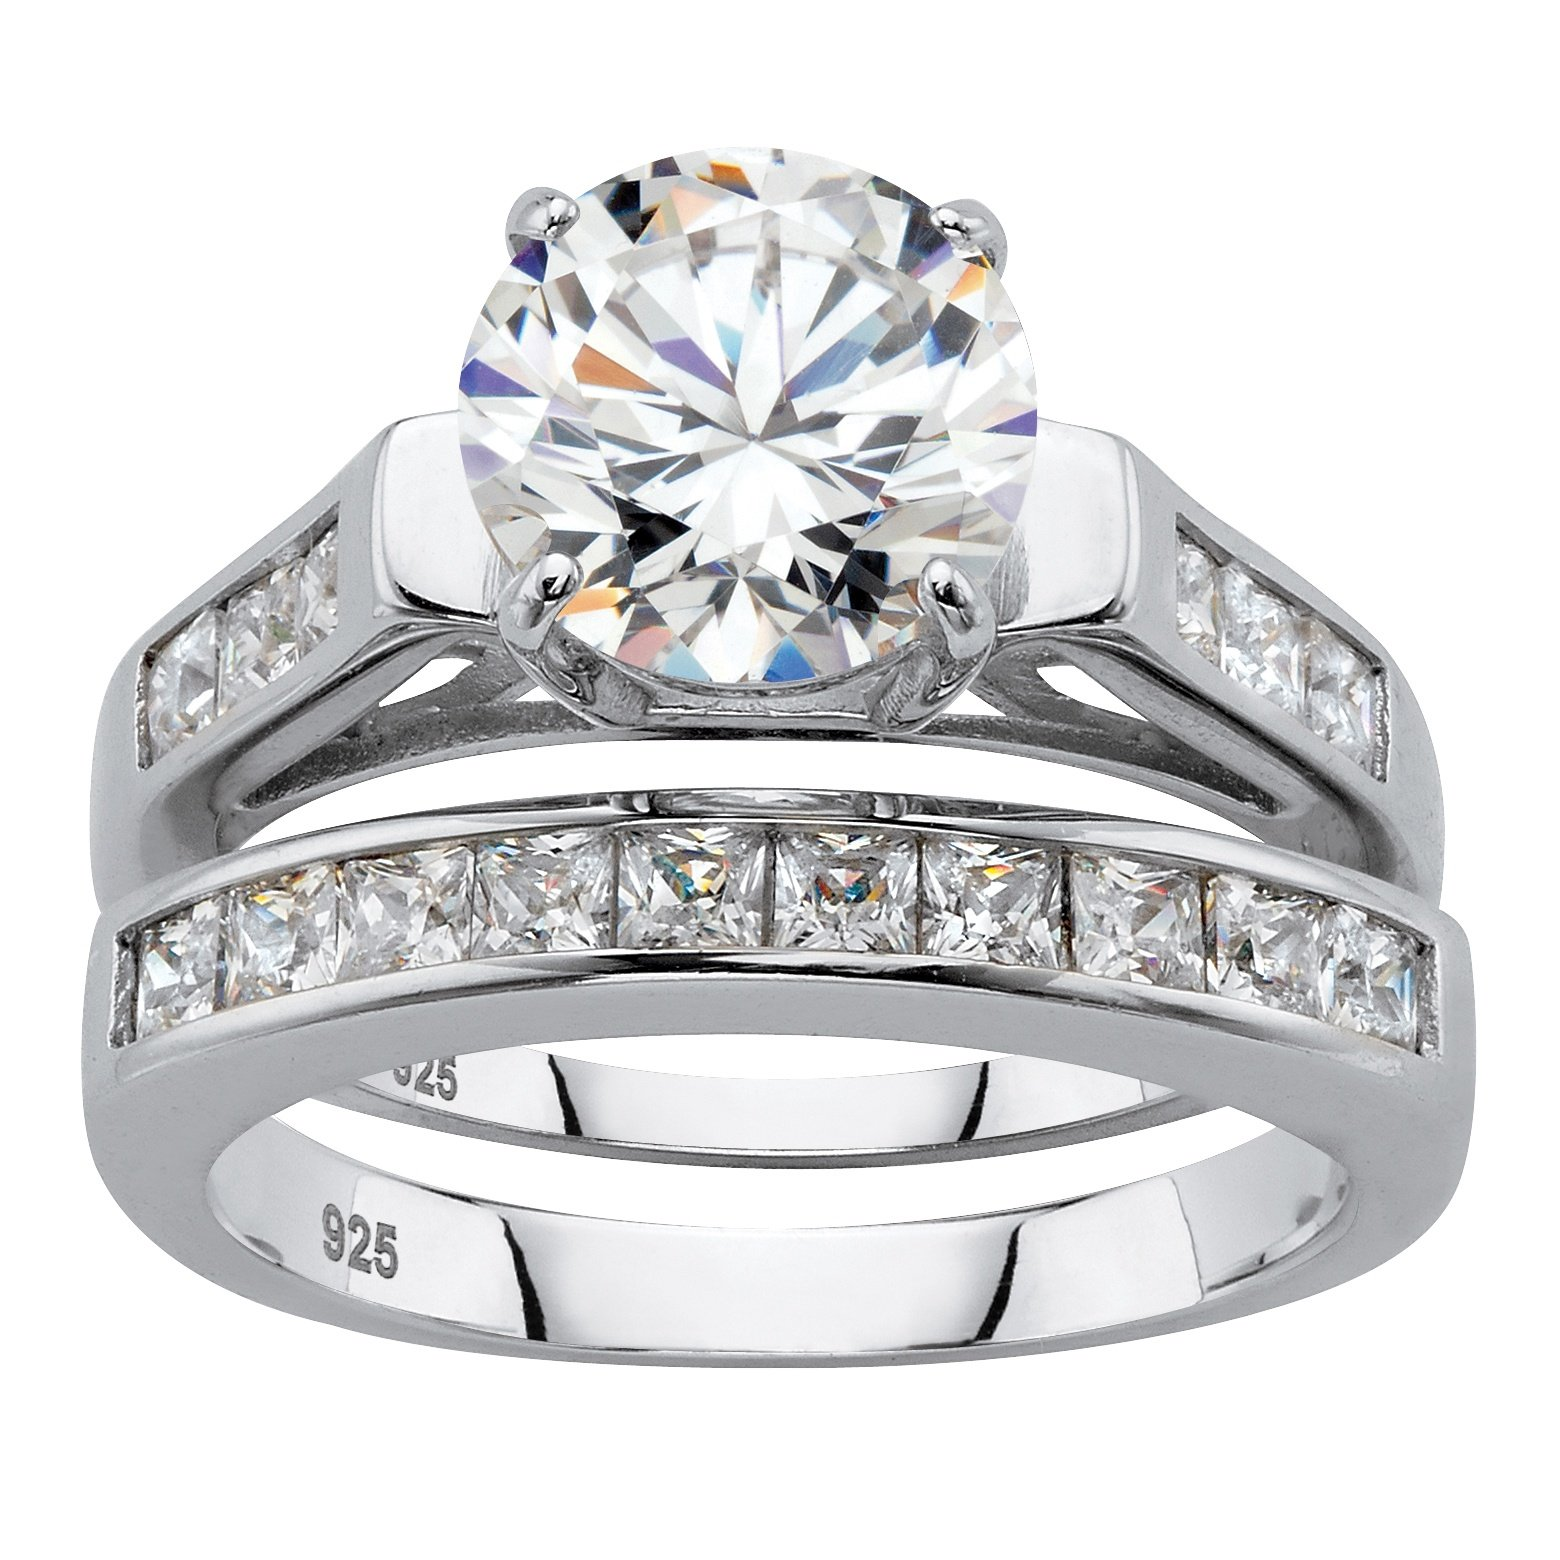 Platinum over Sterling Silver 2 Piece Bridal Ring Set, Round Cubic Zirconia Size 8